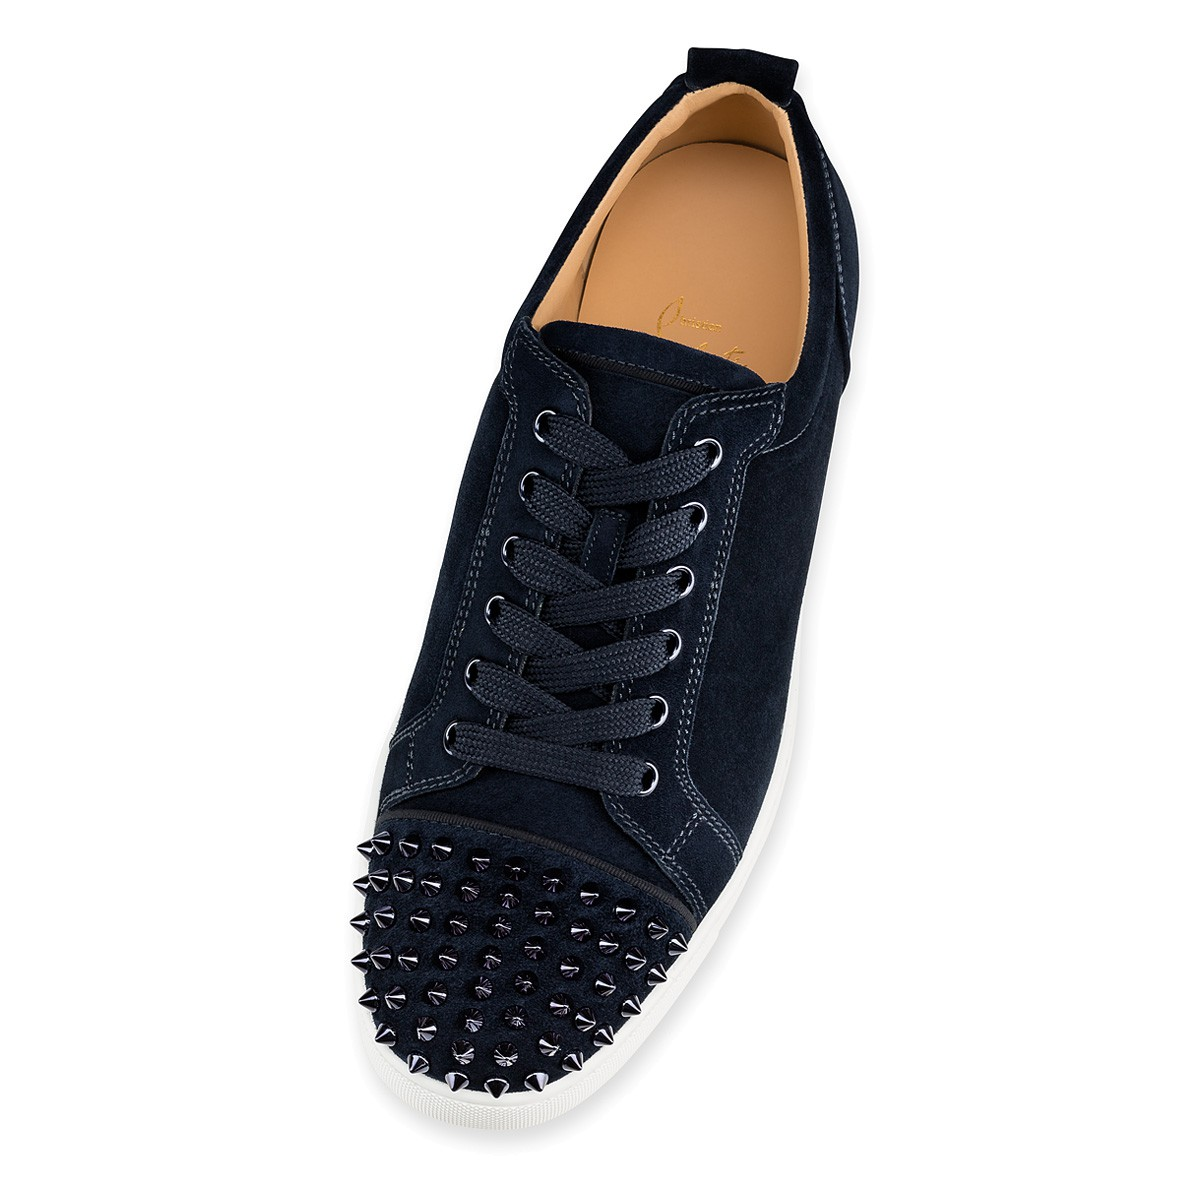 Shoes - Louis Junior Spikes Veau Velours - Christian Louboutin